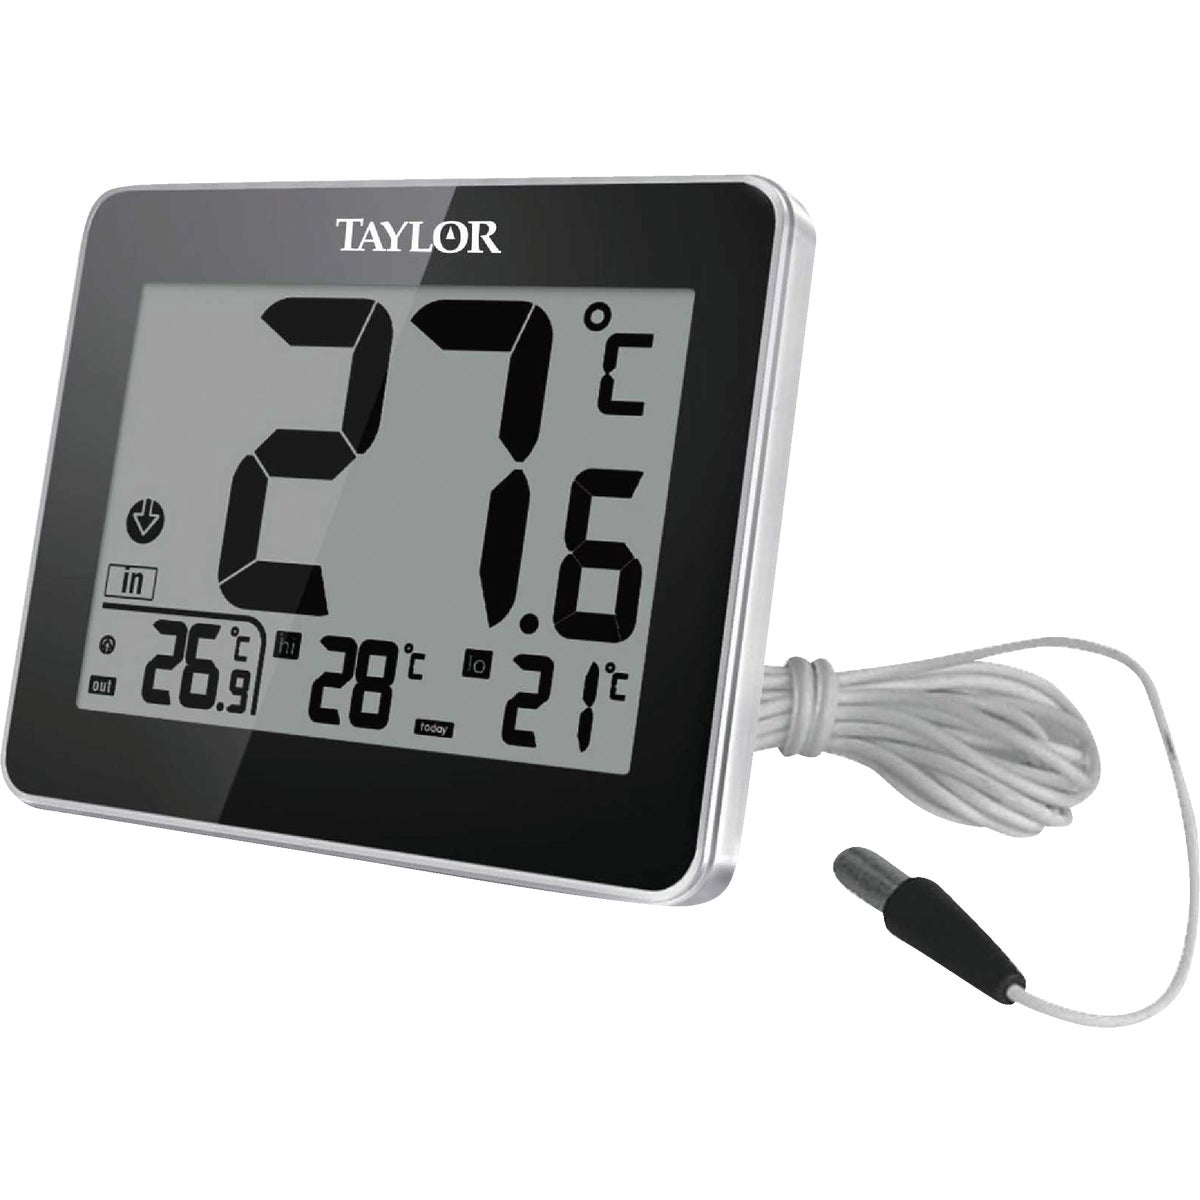 DIGTL IN/OUT THERMOMETER - 1522 by Taylor Precision